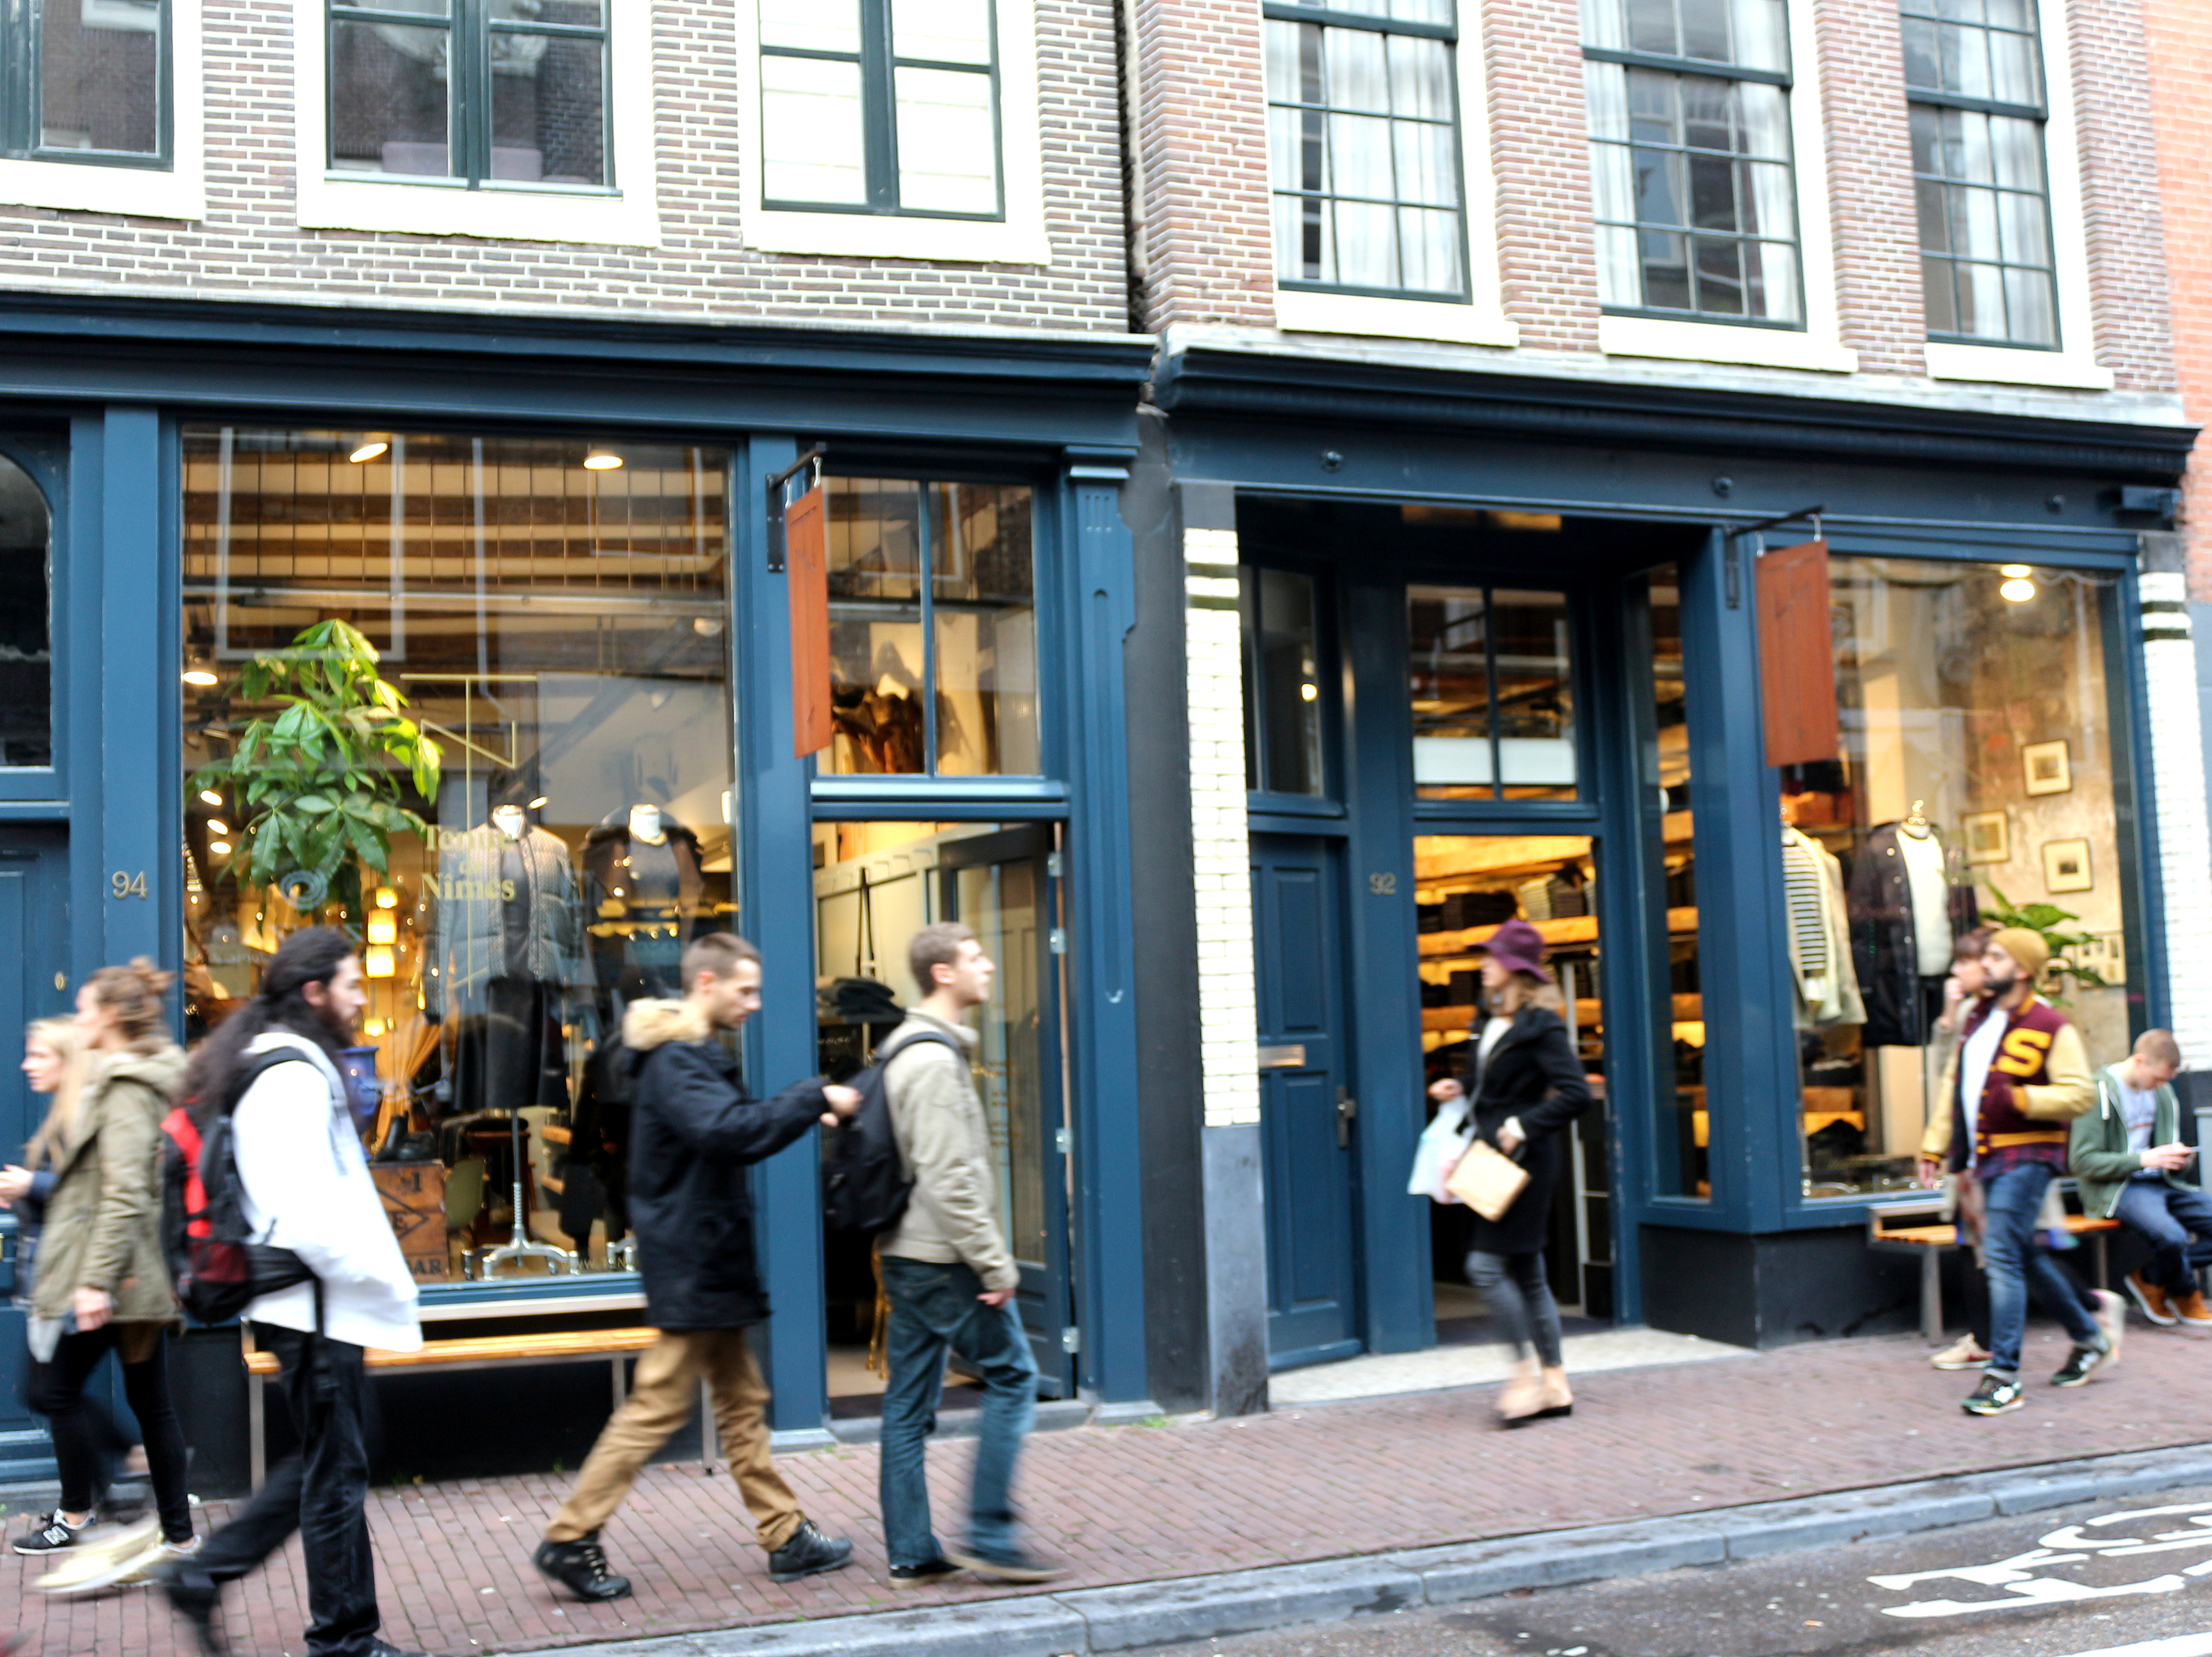 Store Amsterdam Shopping For Clothing In Amsterdam • Awesome Amsterdam